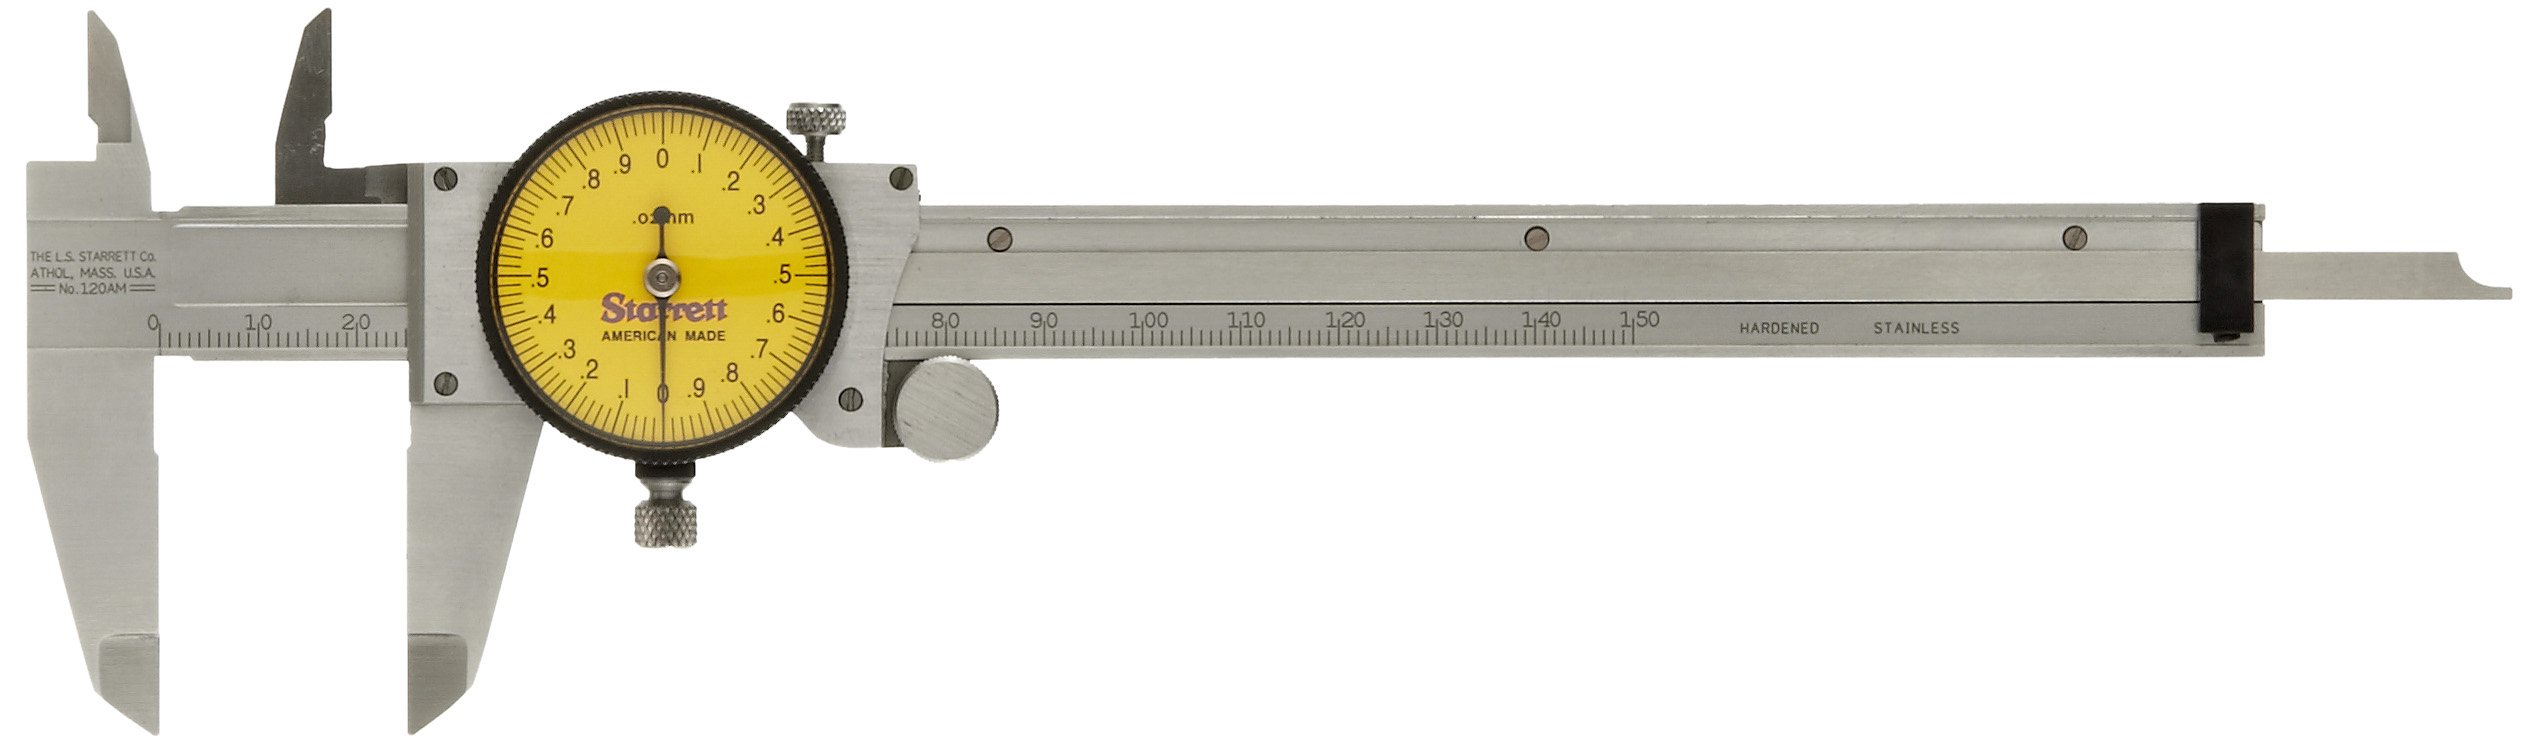 Starrett 120AM-150 Dial Caliper, Stainless Steel, Yellow Face, 0-150mm Range, +/-0.03mm Accuracy, 0.02mm Resolution